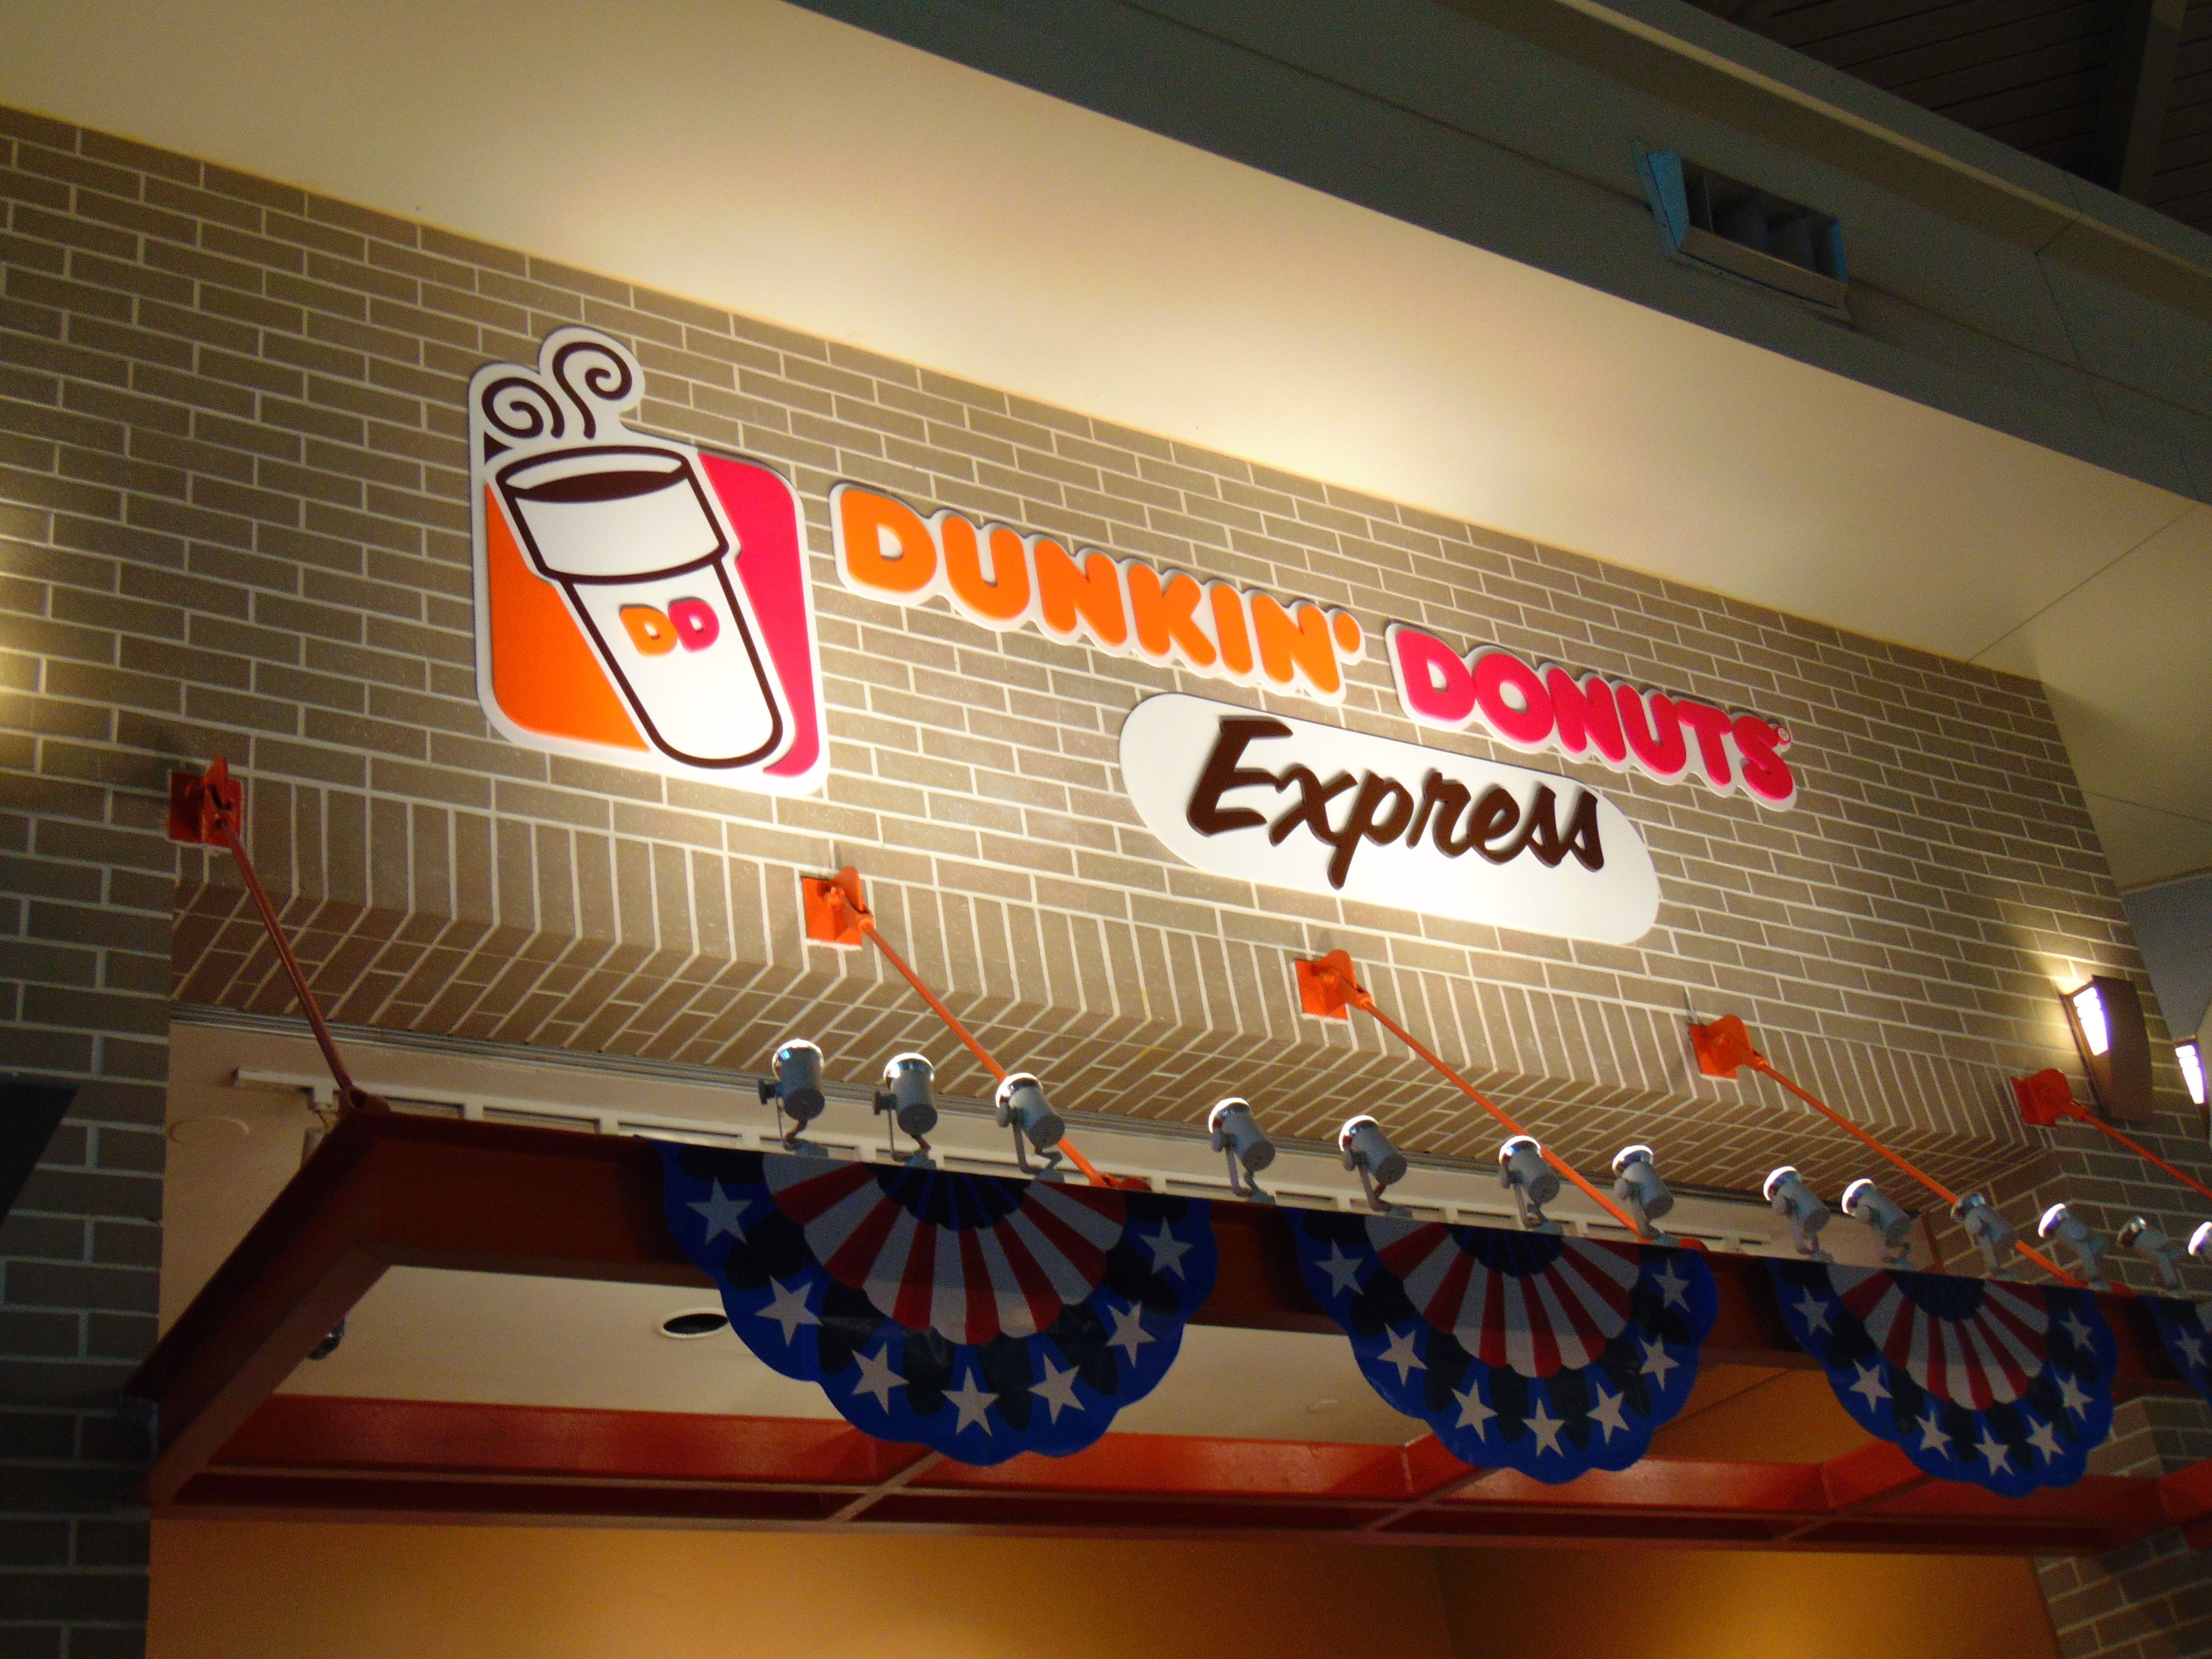 Dunkin Donuts Wikipedia 20181010 Barn Doors Not Just For Barns Anymore Hotel Dunkin Donuts House In The Woods